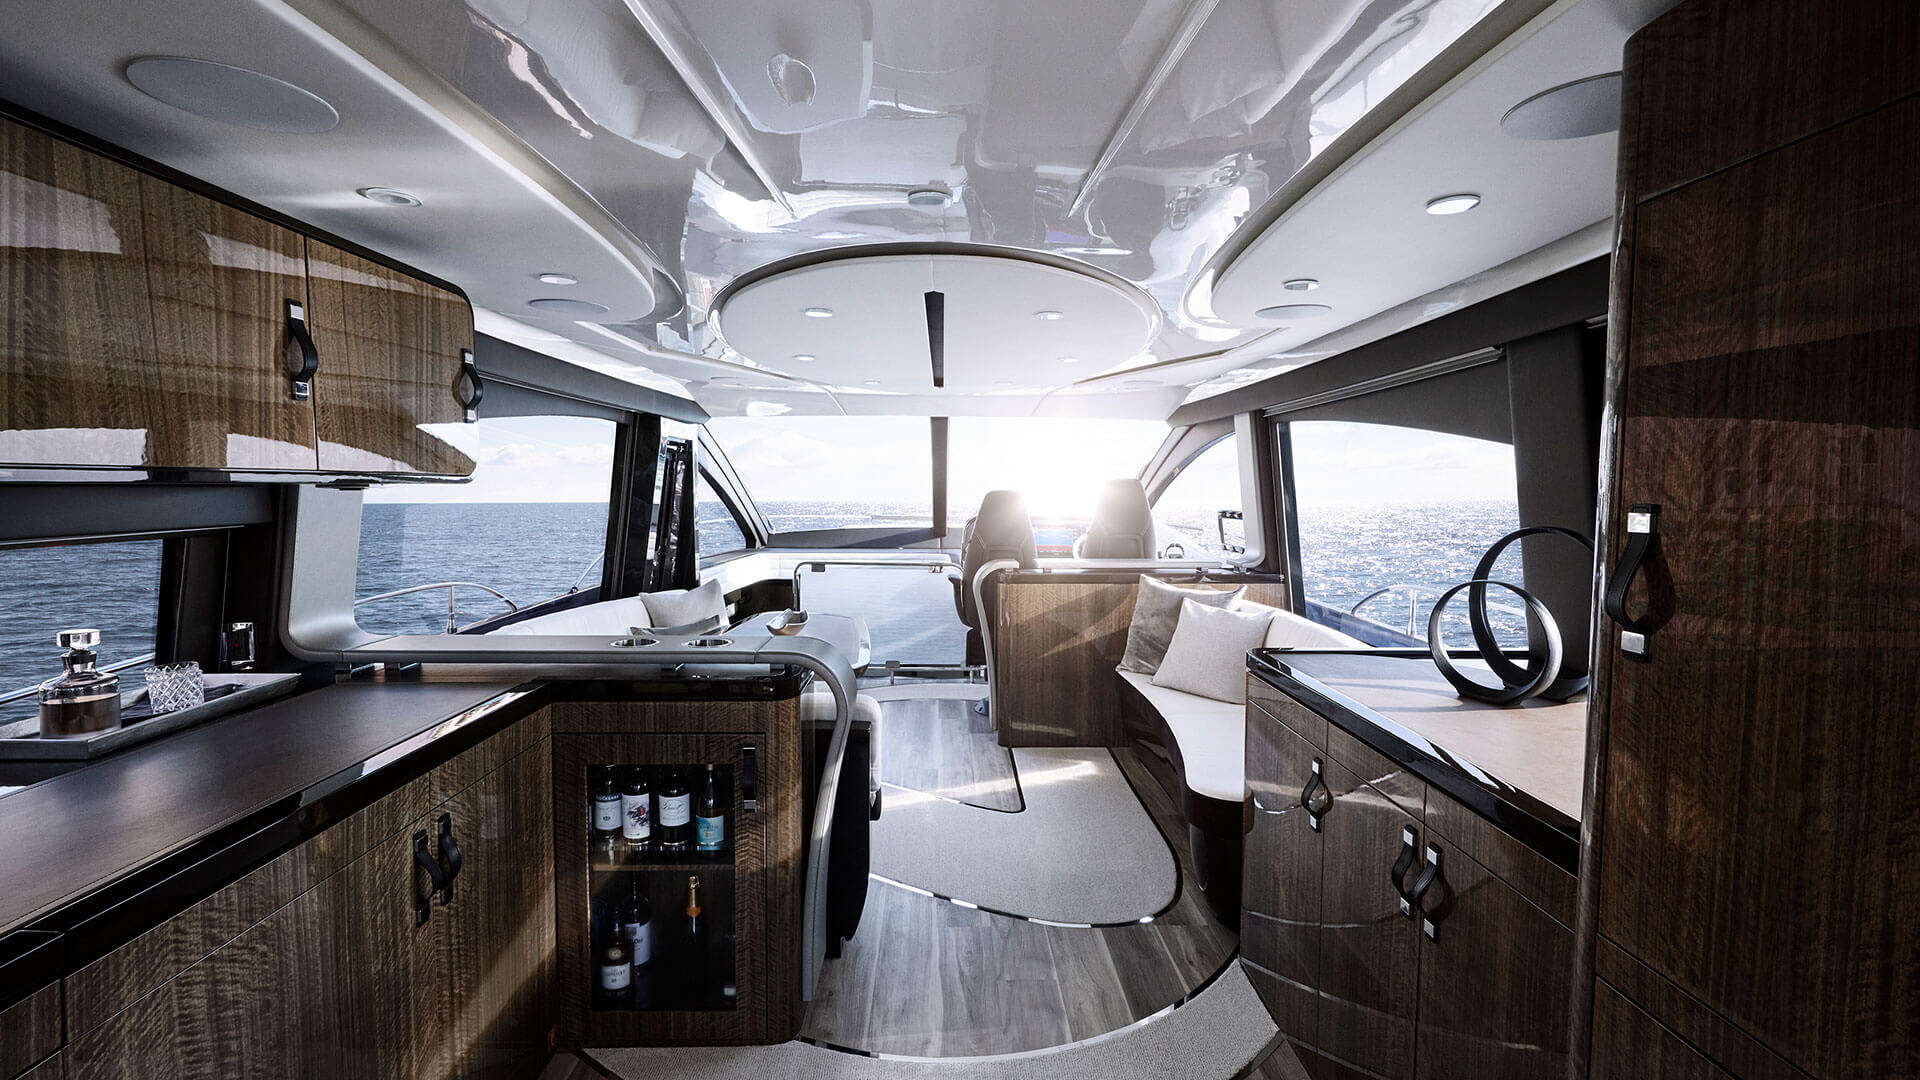 2020 lexus yacht ly 650 premiere gallery 02